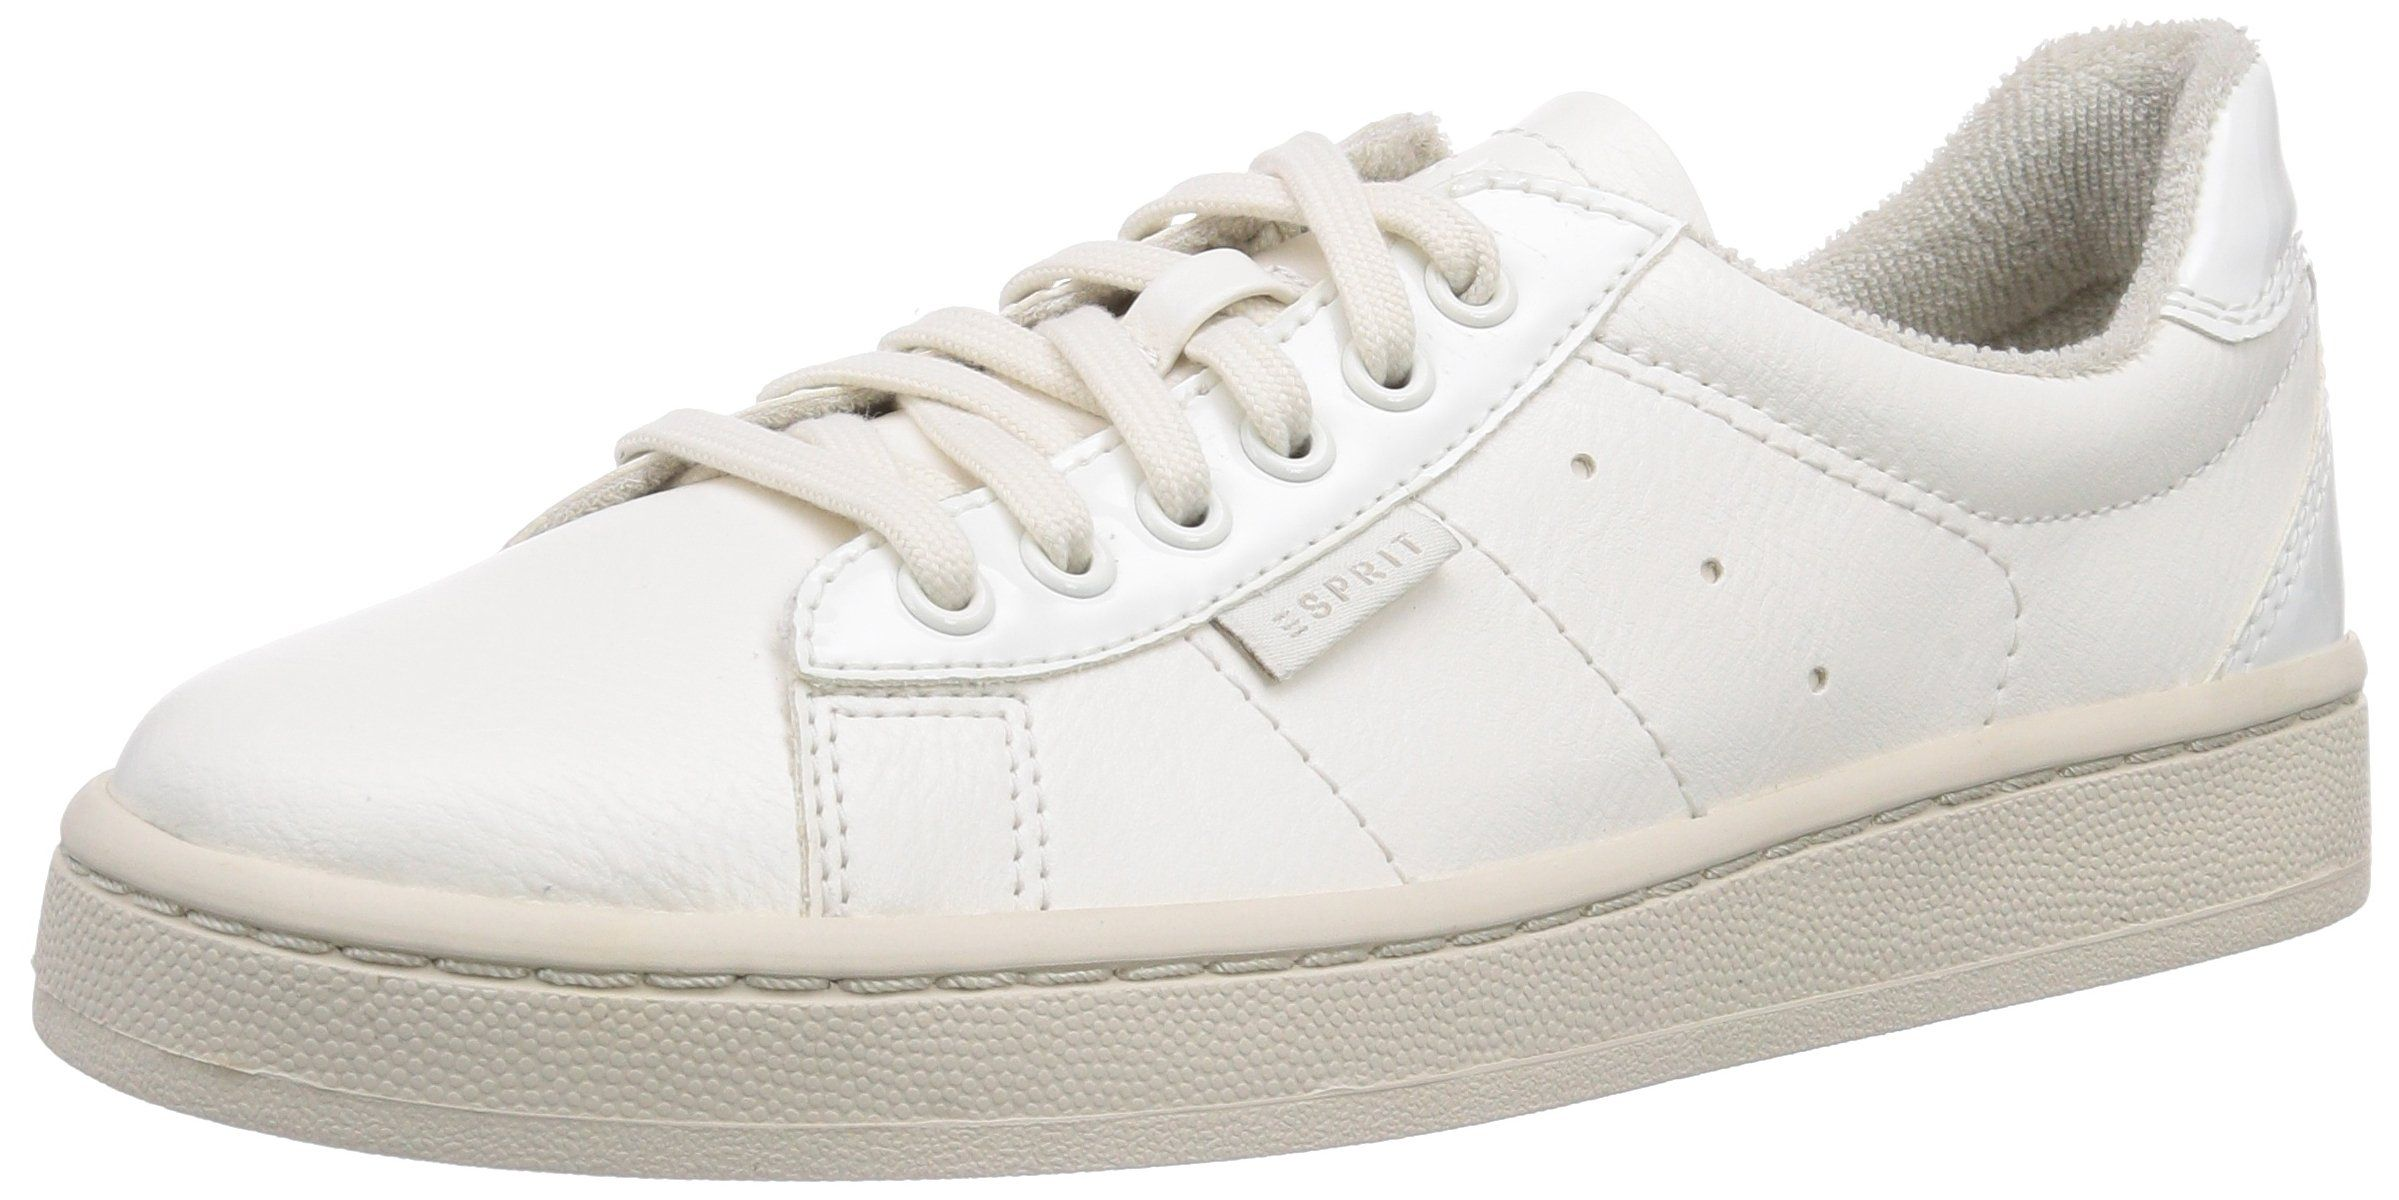 buy online 0f782 0ed14 ESPRIT Gwen Lace Up, Low-Top Sneaker donna, Bianco (Weiß ...